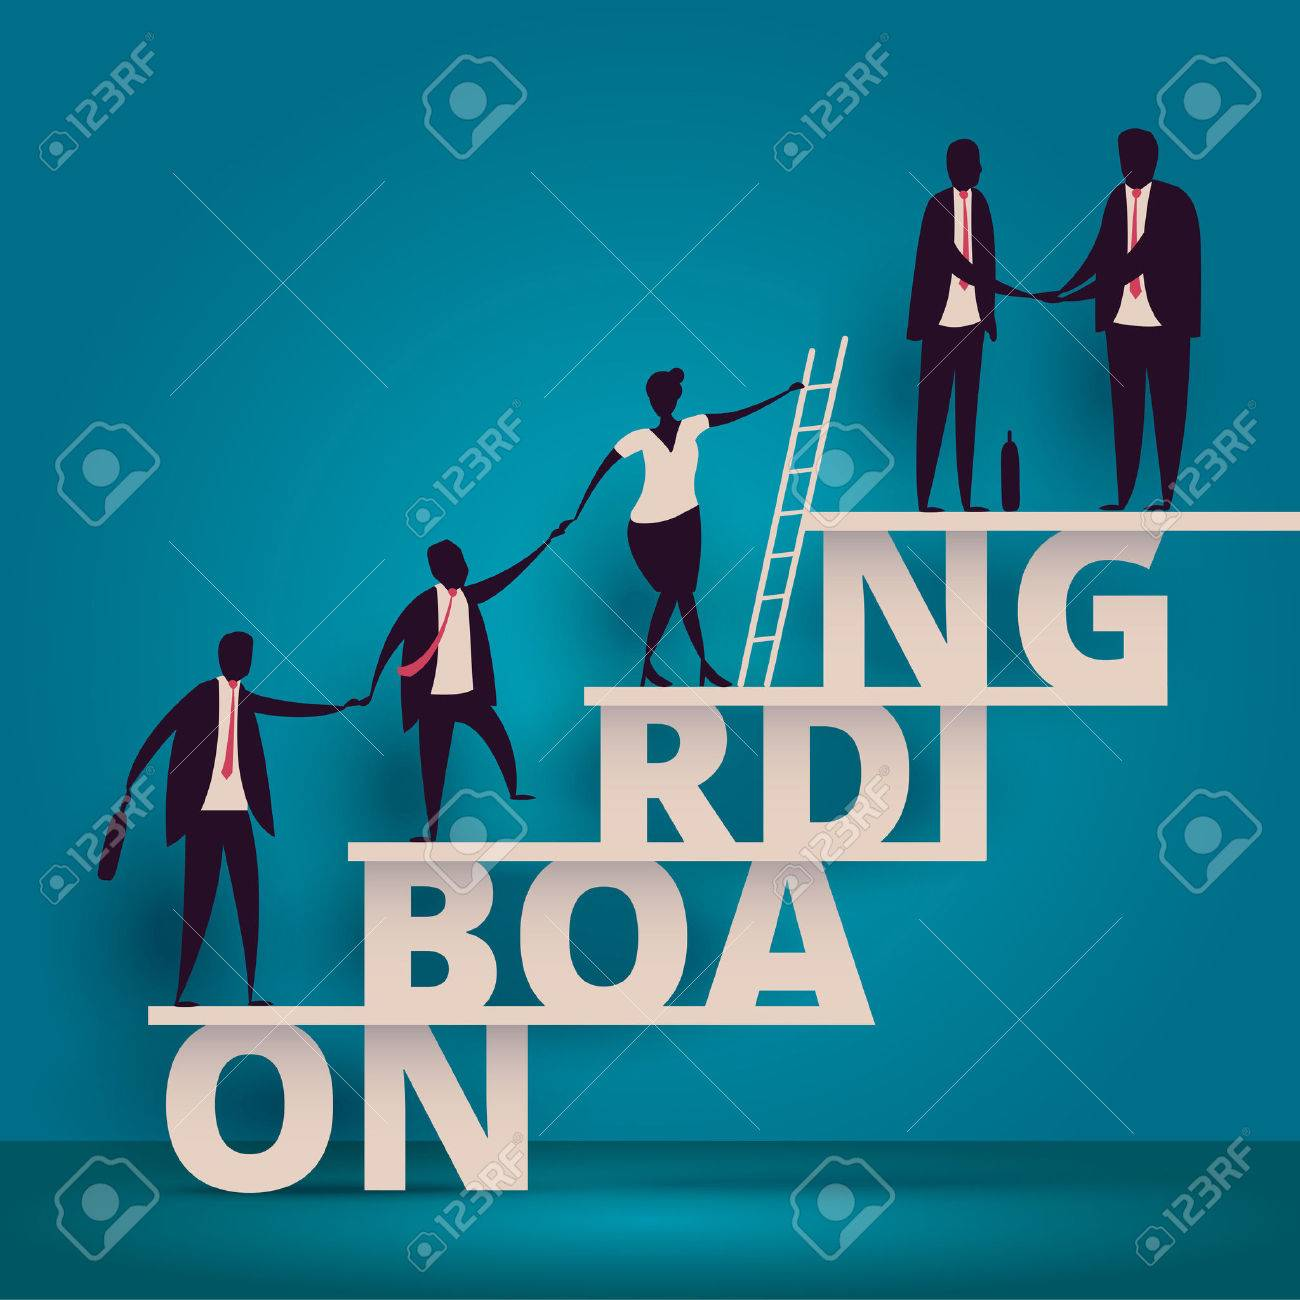 Business onboarding concept. HR manager hiring employee or workers for job. Recruiting staff or personnel in company. - 74637177